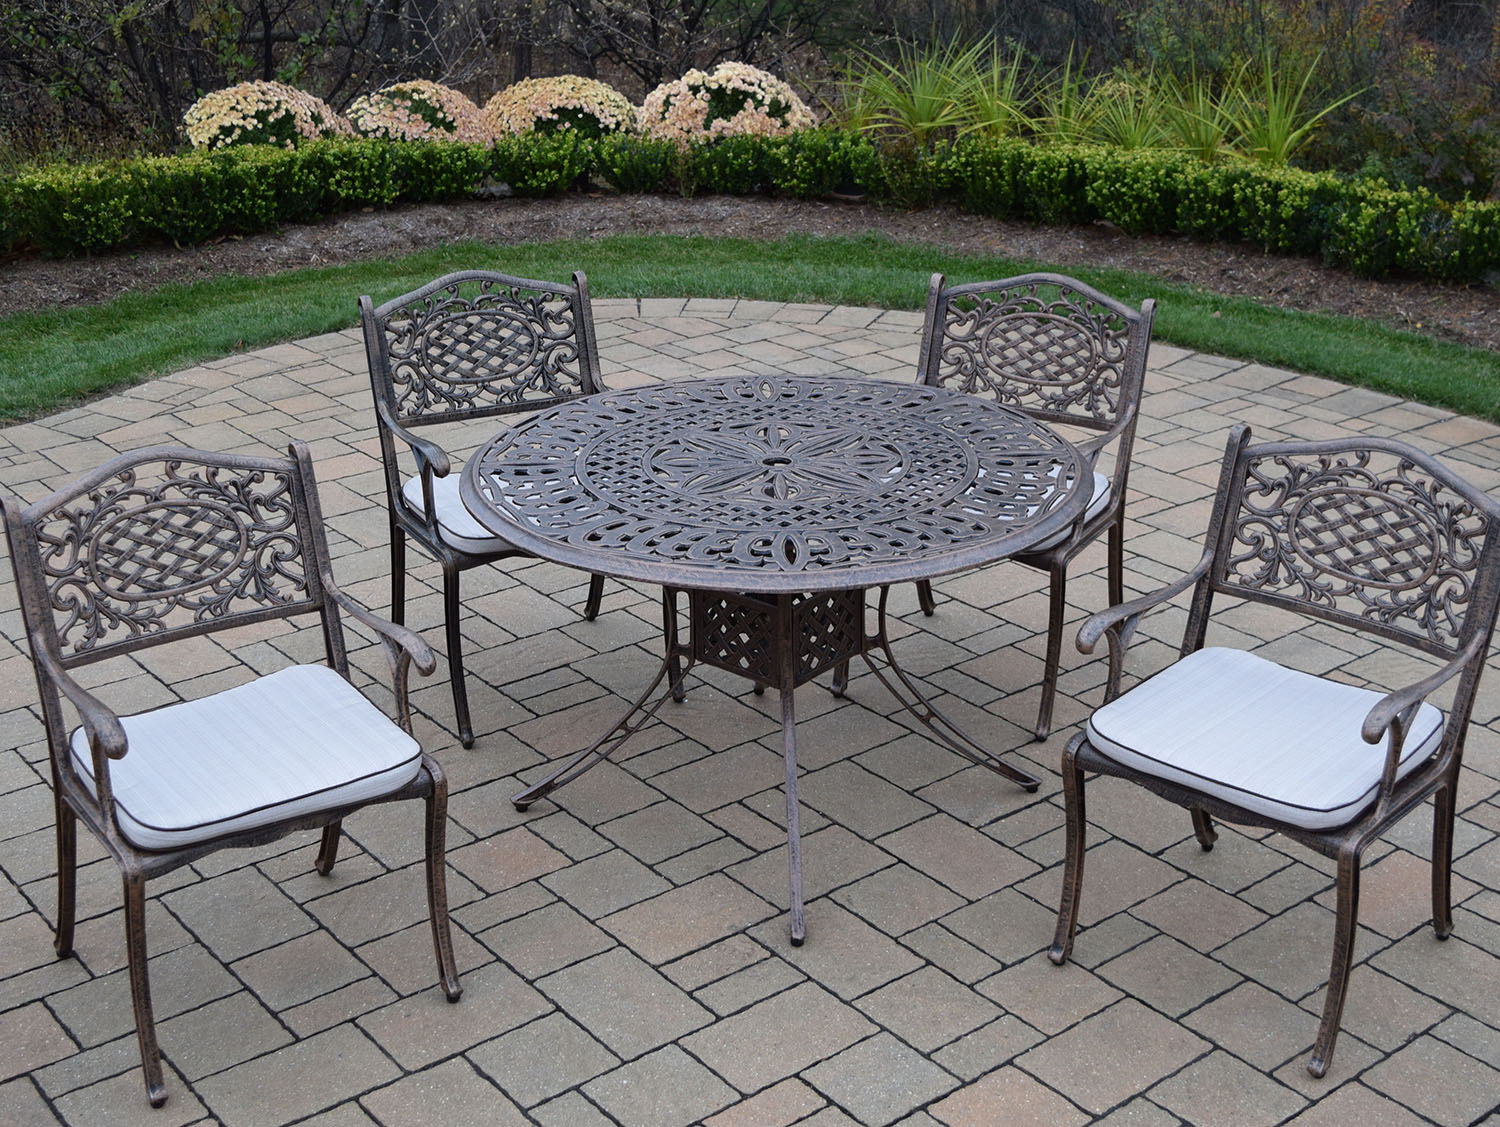 Choose Capitol Antique Bronze Dining Set Cushions 13 2303